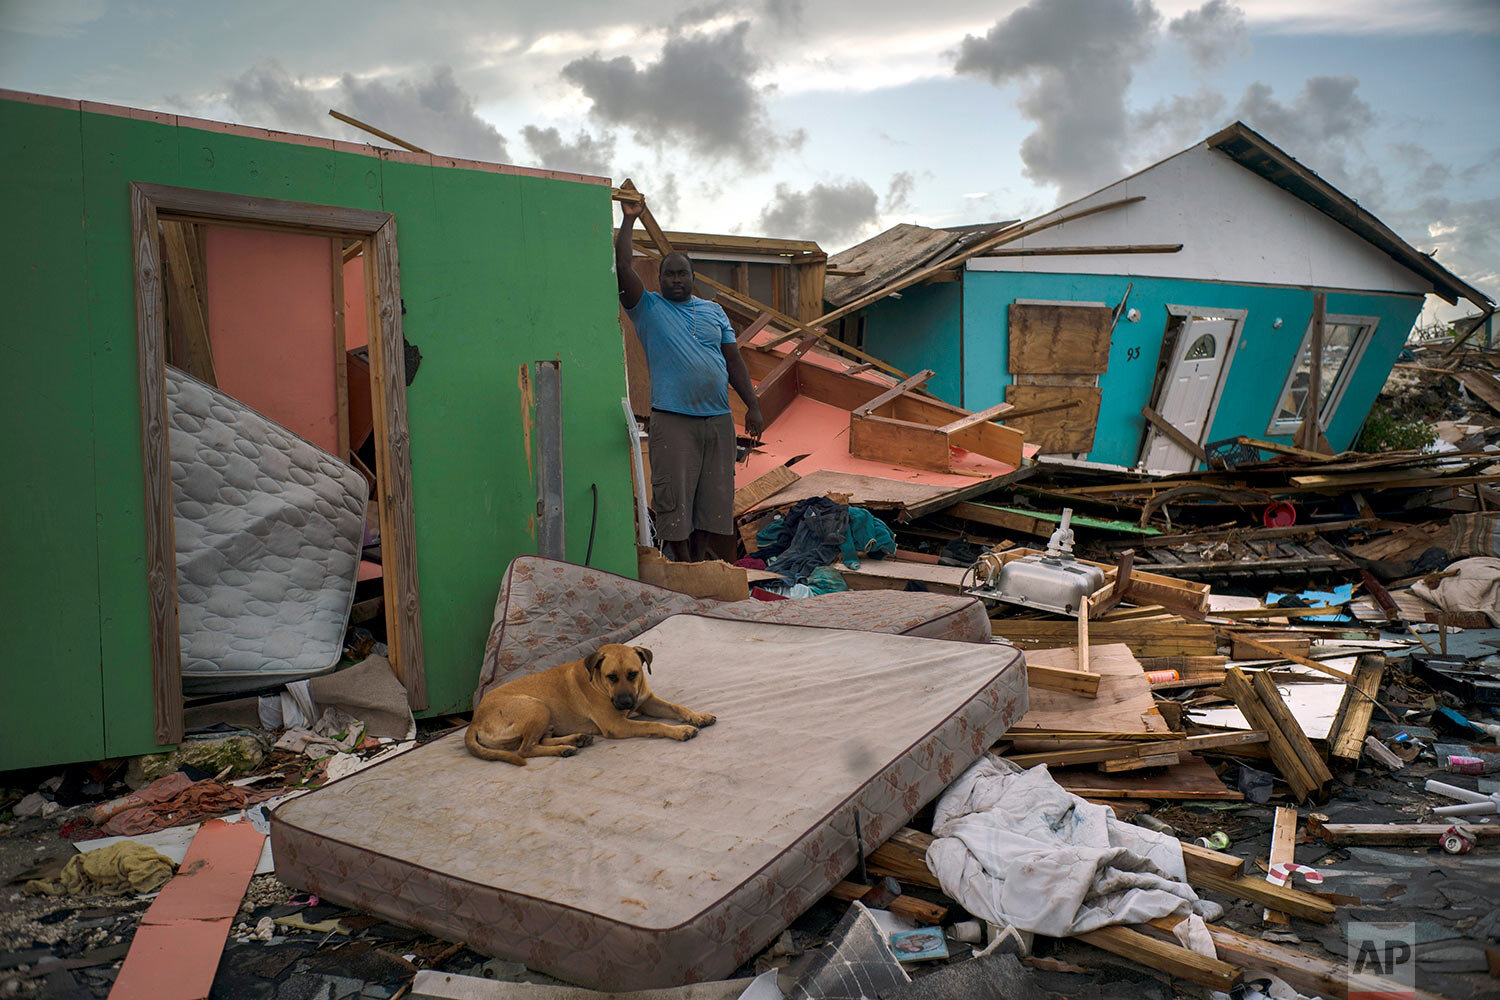 A man stands next to a destroyed house as a dog named Francoise rests on a mattress in the rubble left by Hurricane Dorian in Abaco, Bahamas, Monday, Sept. 16, 2019. (AP Photo/Ramon Espinosa)